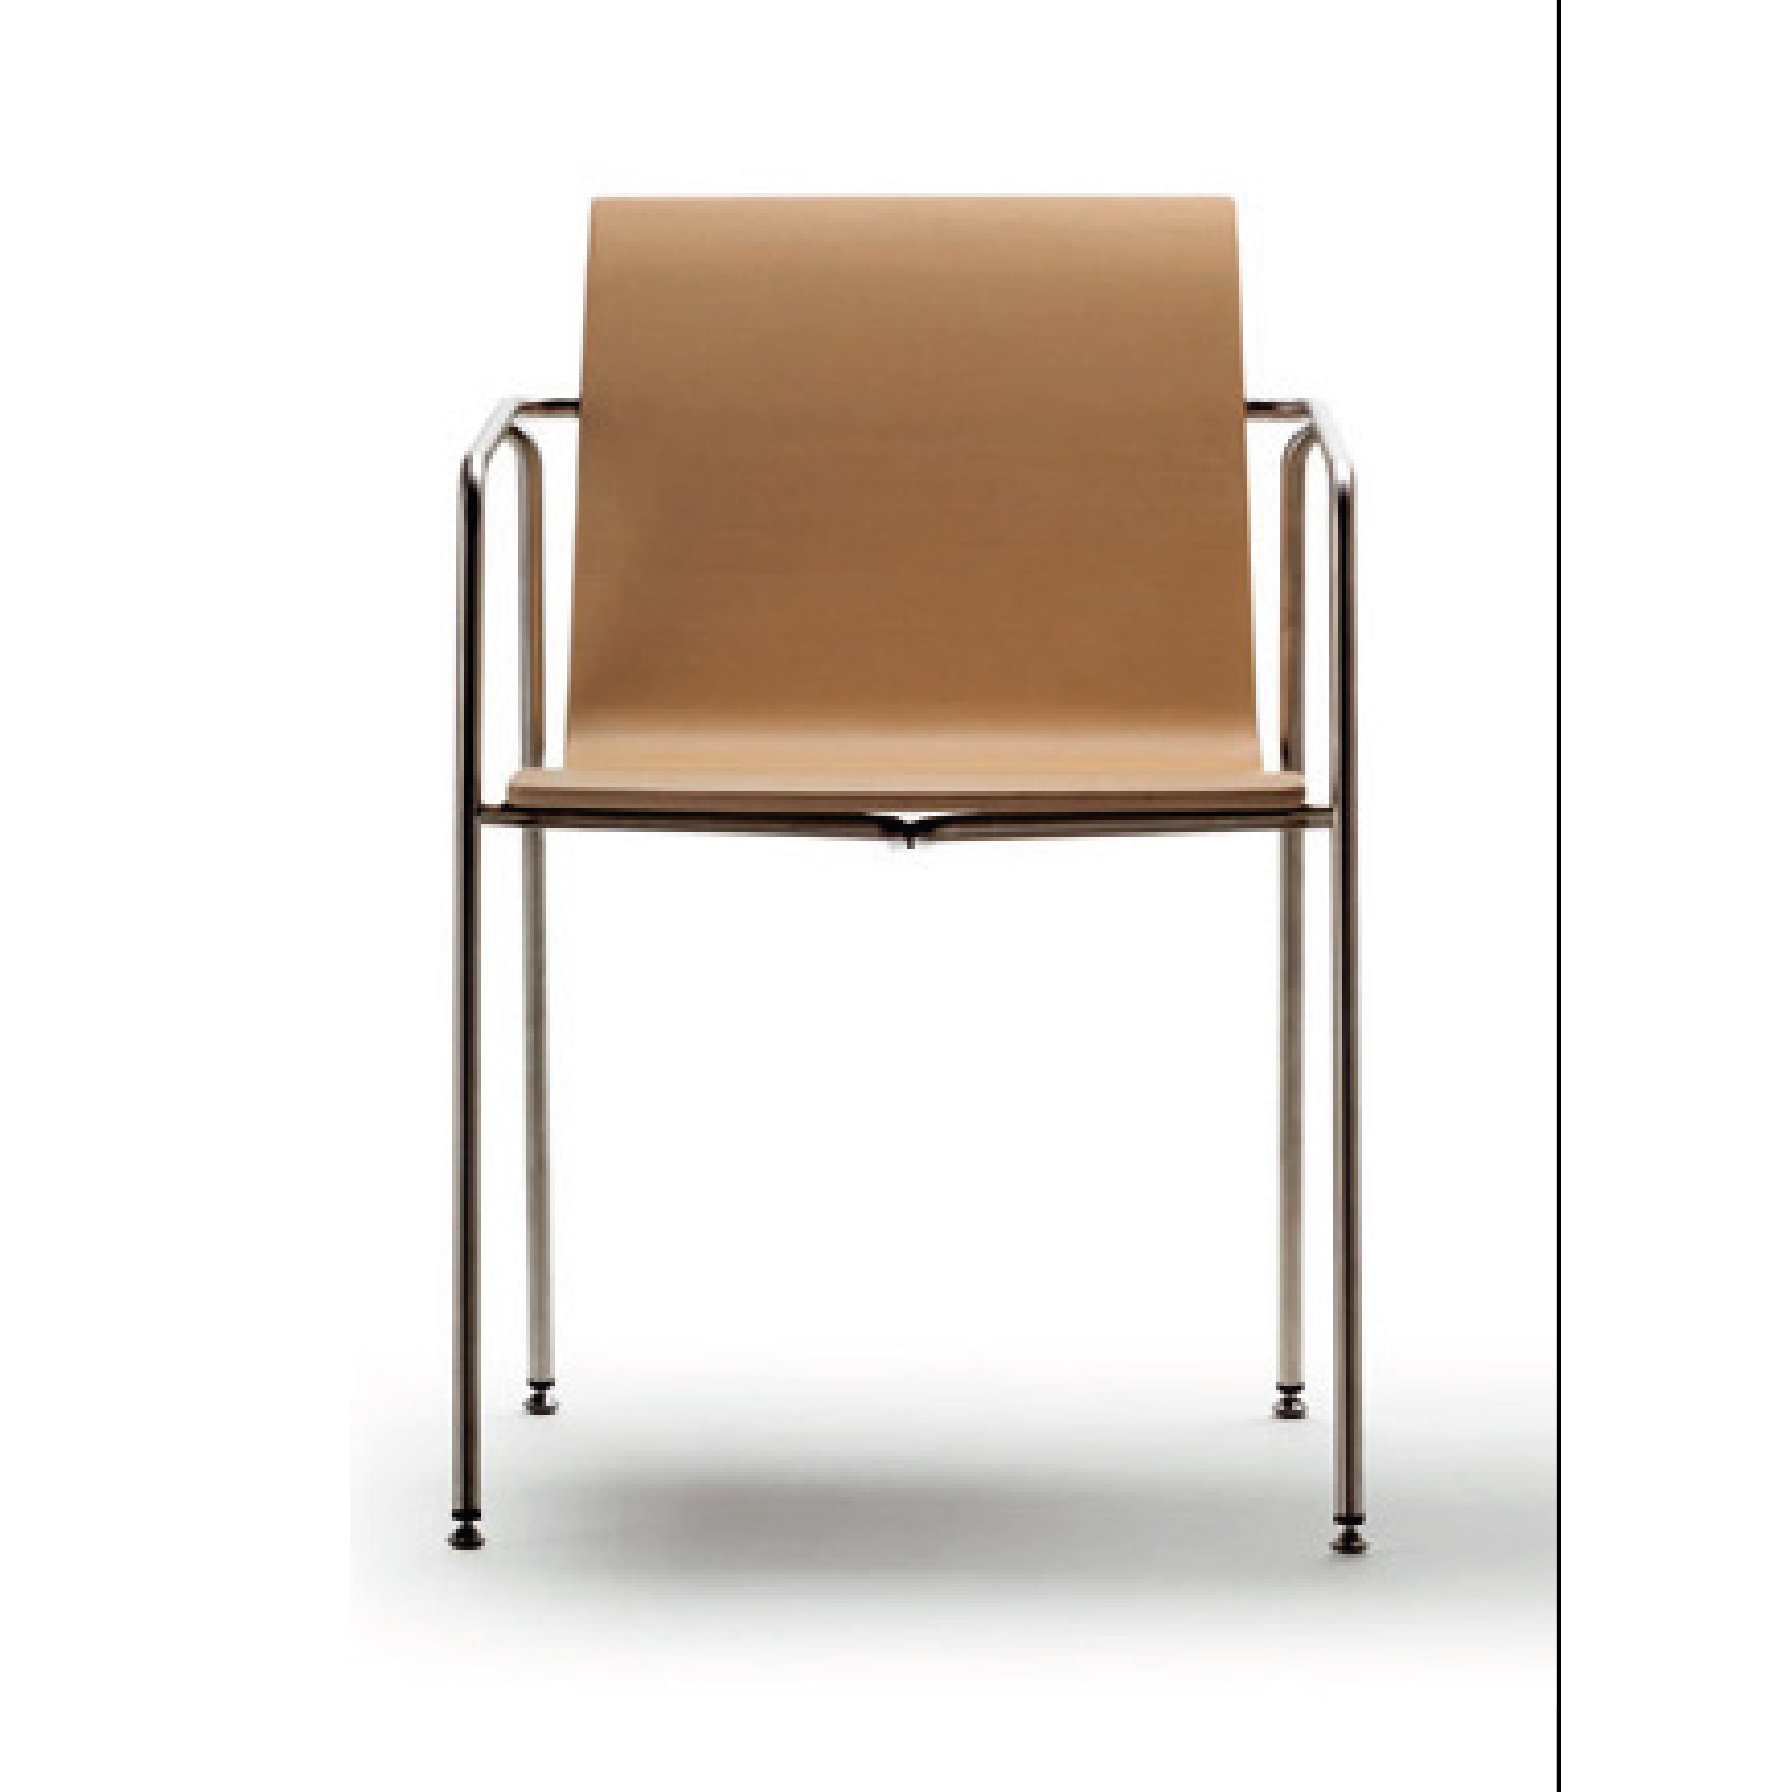 Sellex's  IRINA Basic Chair by Lievore Altherr Molina